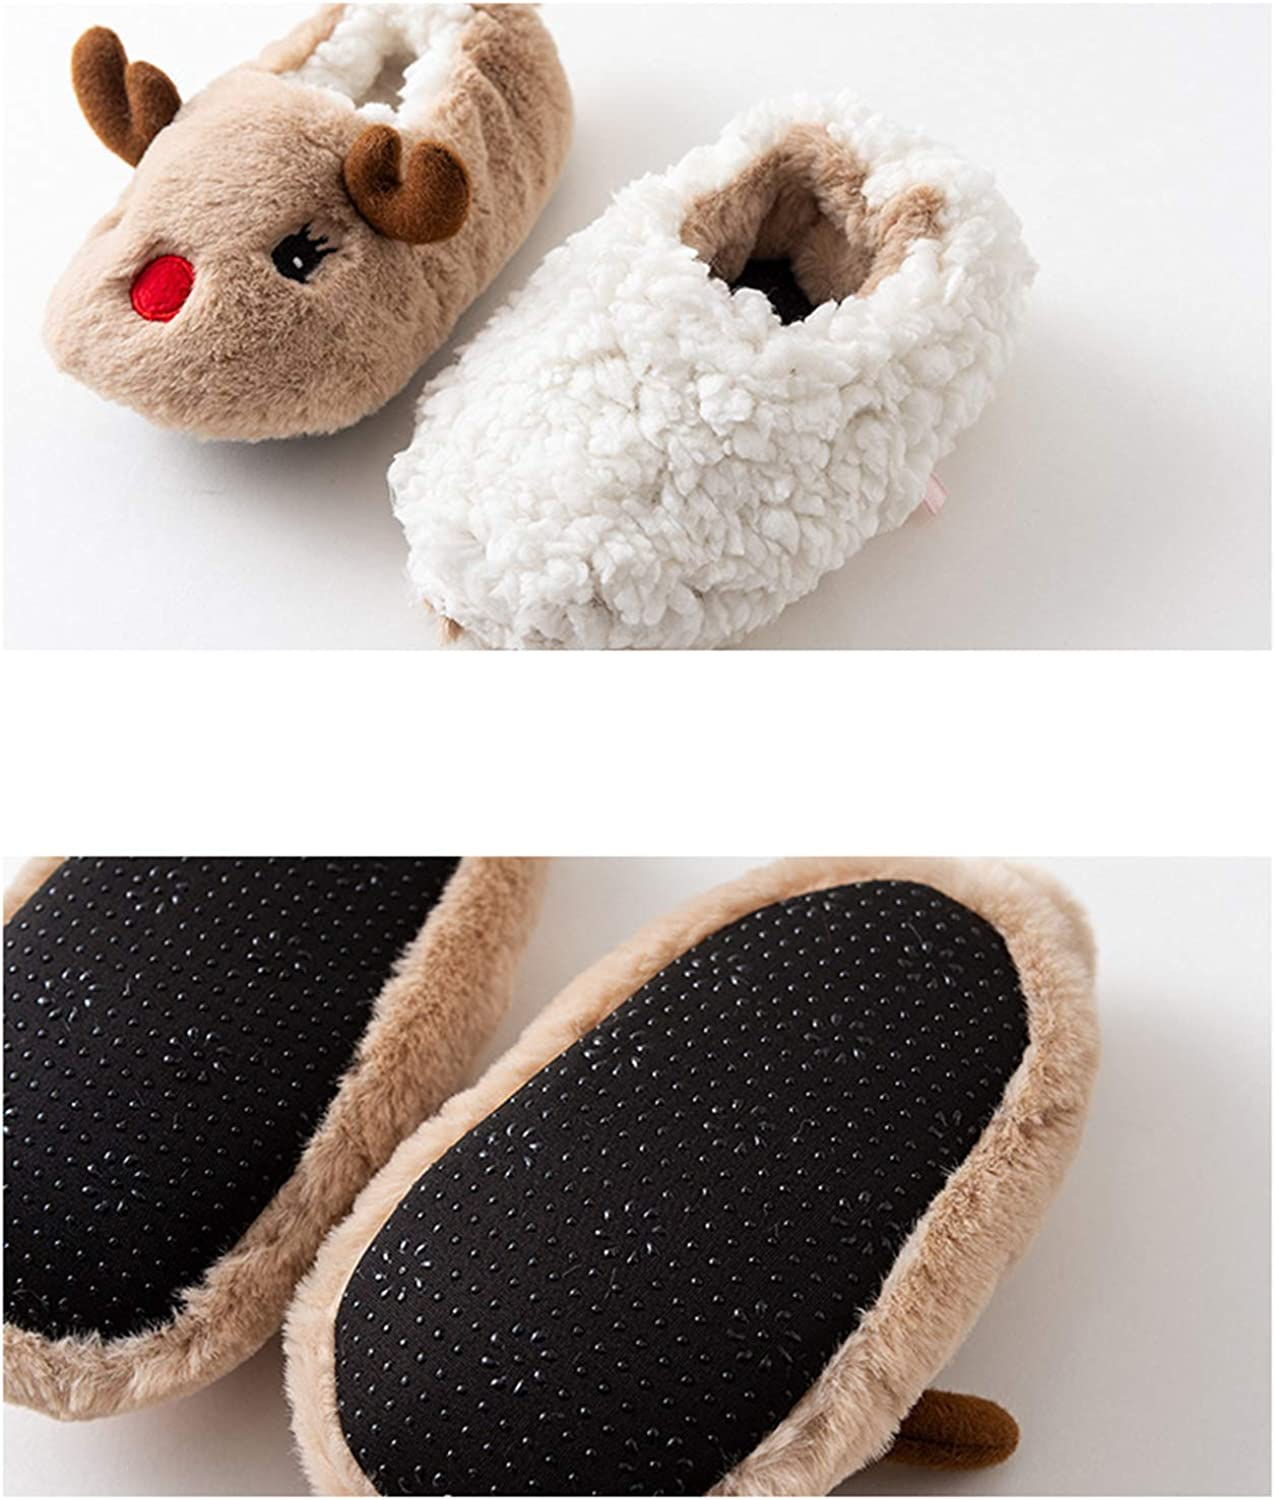 De feuilles Kids Toddler Baby Non-Slip Slippers Warm Lining Soft Sole Crib Shoes for Infant Boys Girls